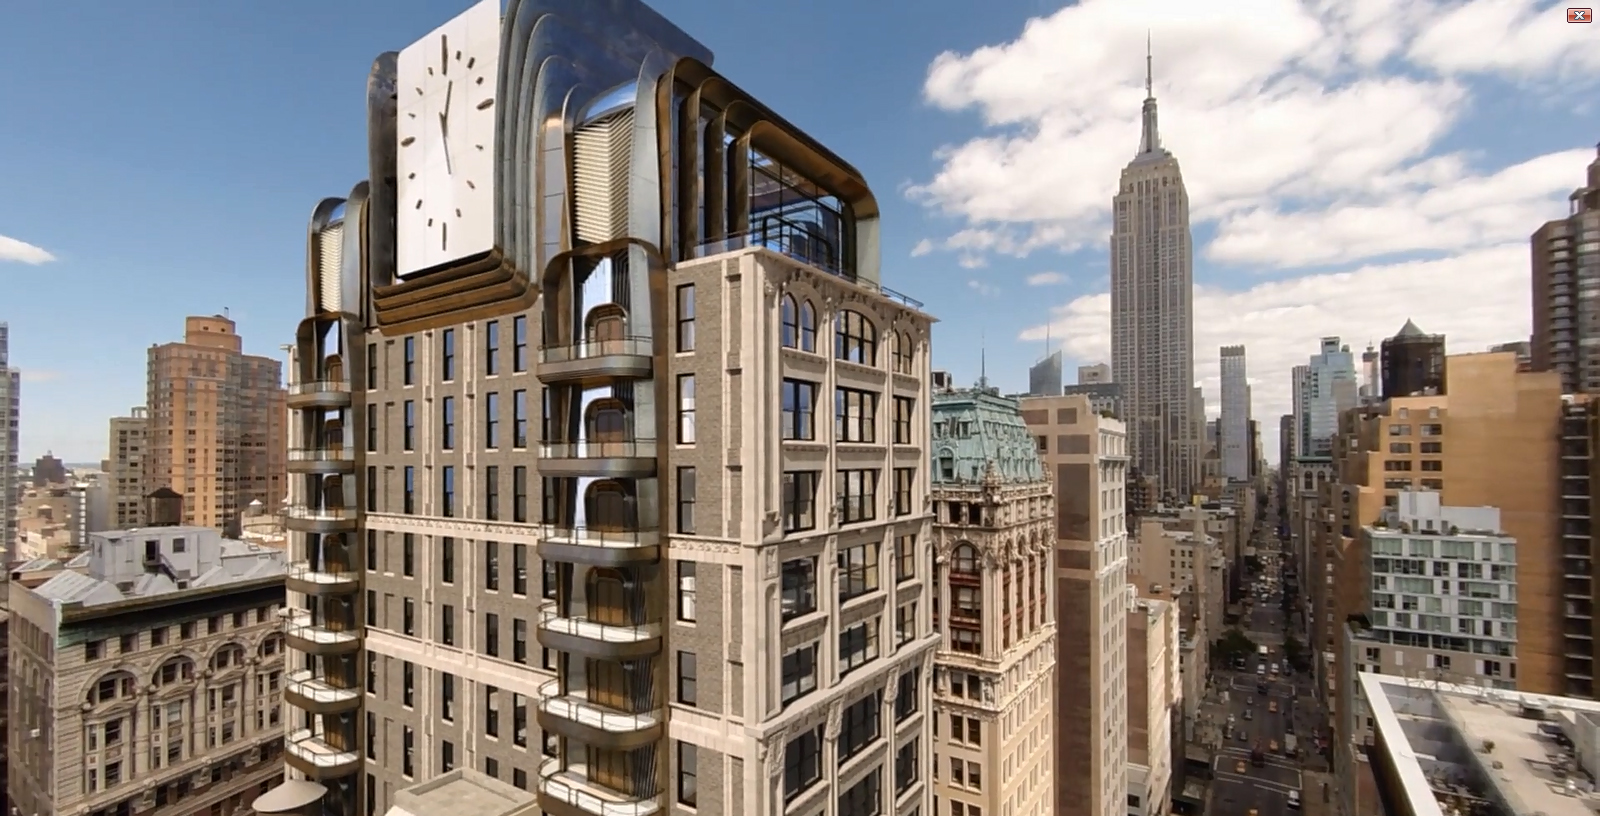 New Renderings For 212 Fifth Avenue Show A Whimsical Top